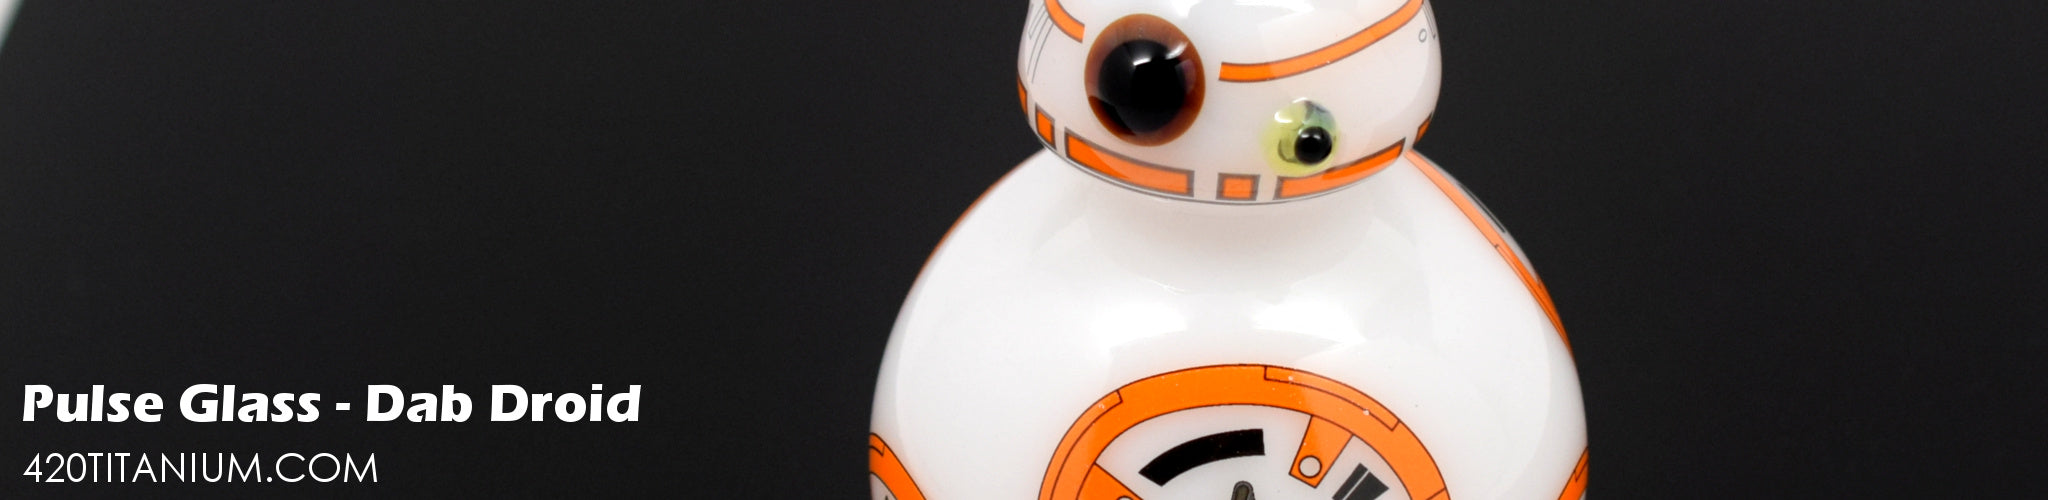 Pulse Glass BB-8 Dab Droid